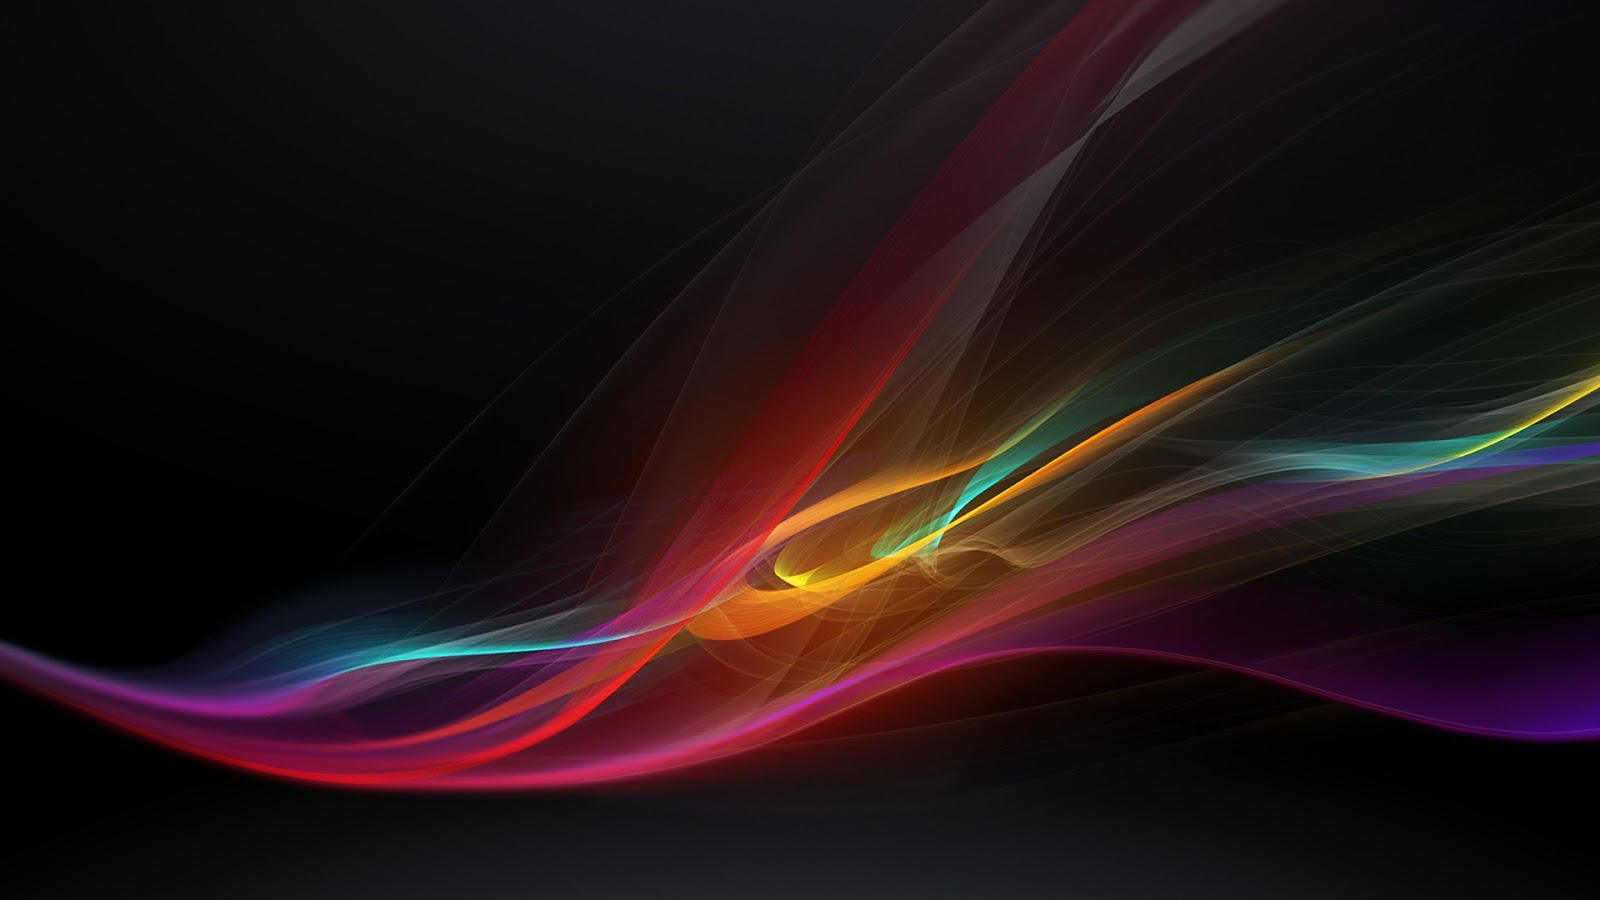 3D Animation Wallpapers